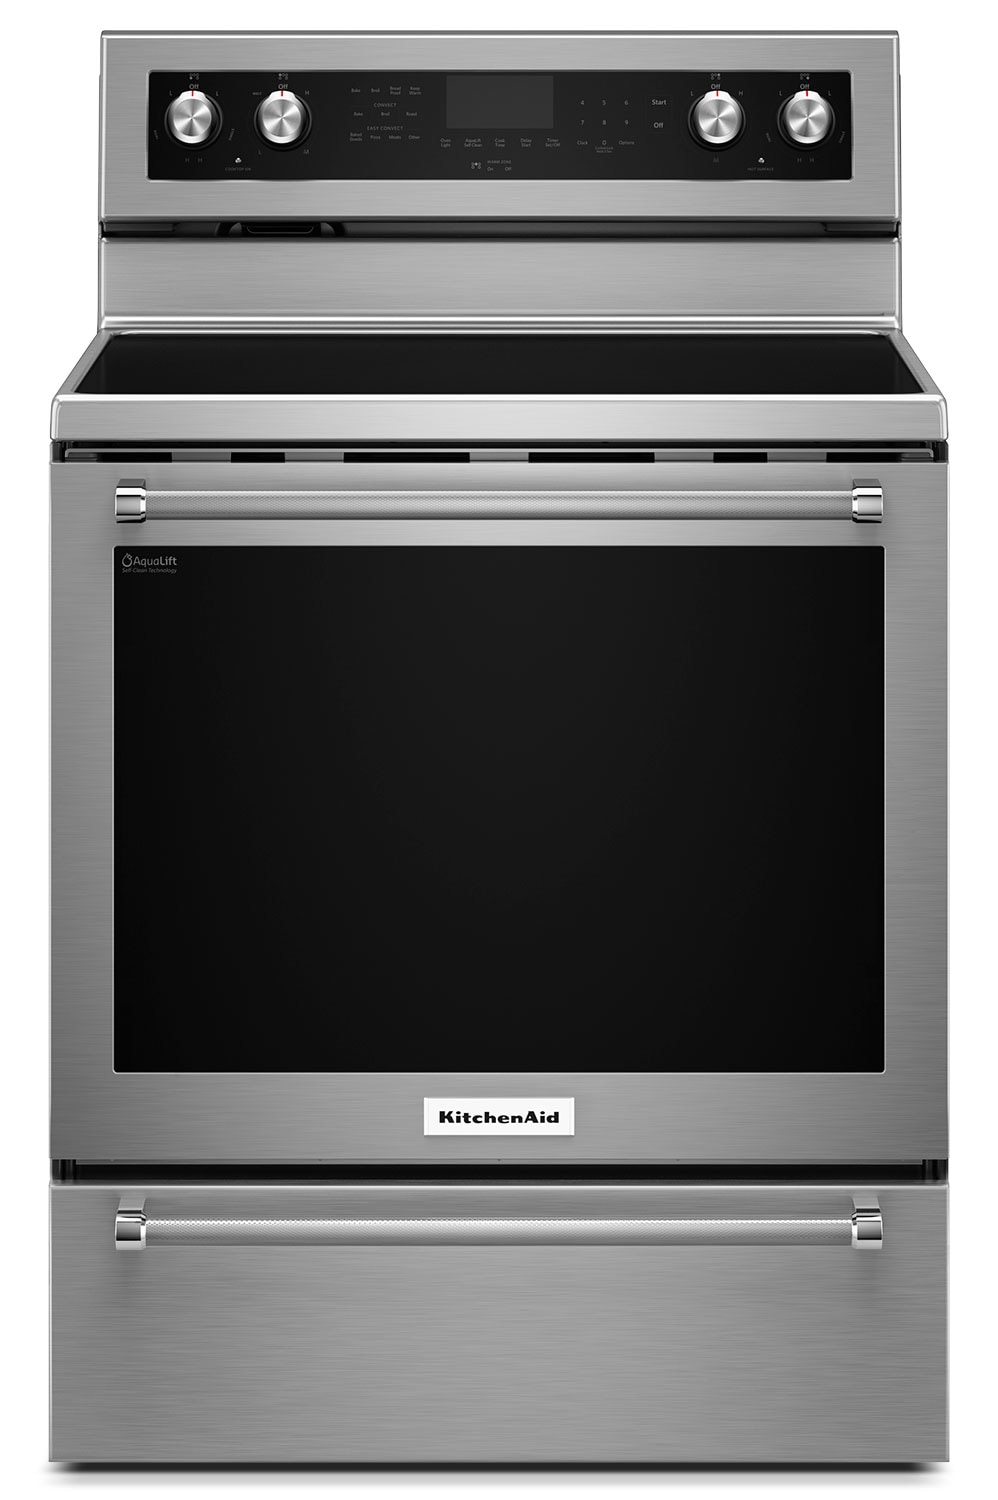 KitchenAid Stainless Steel Freestanding Electric Convection Range (6.4 Cu. Ft.) - YKFEG510ESS